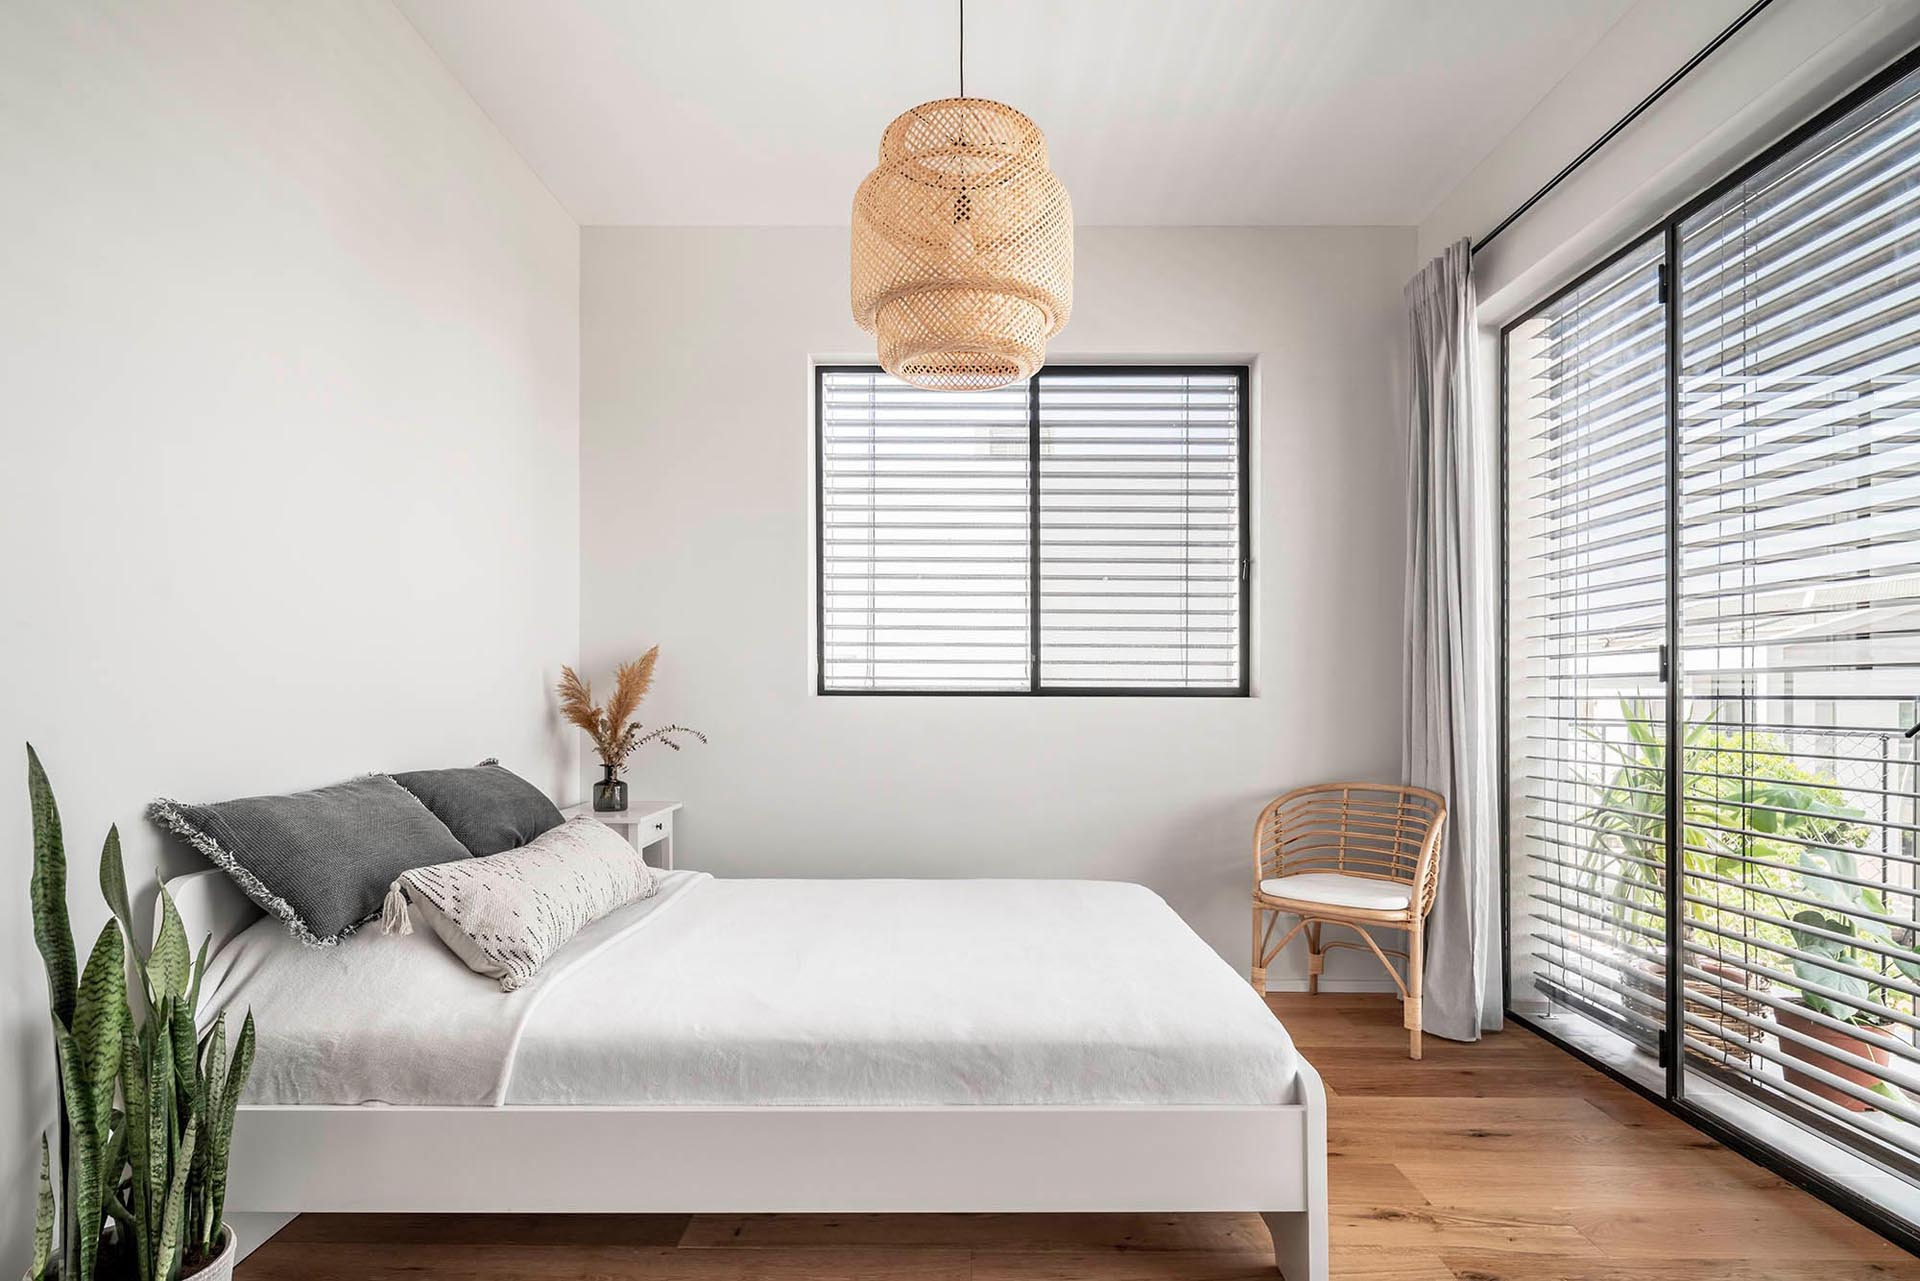 This modern bedroom is simple and bright with light-colored walls, wooden accents, and plants.